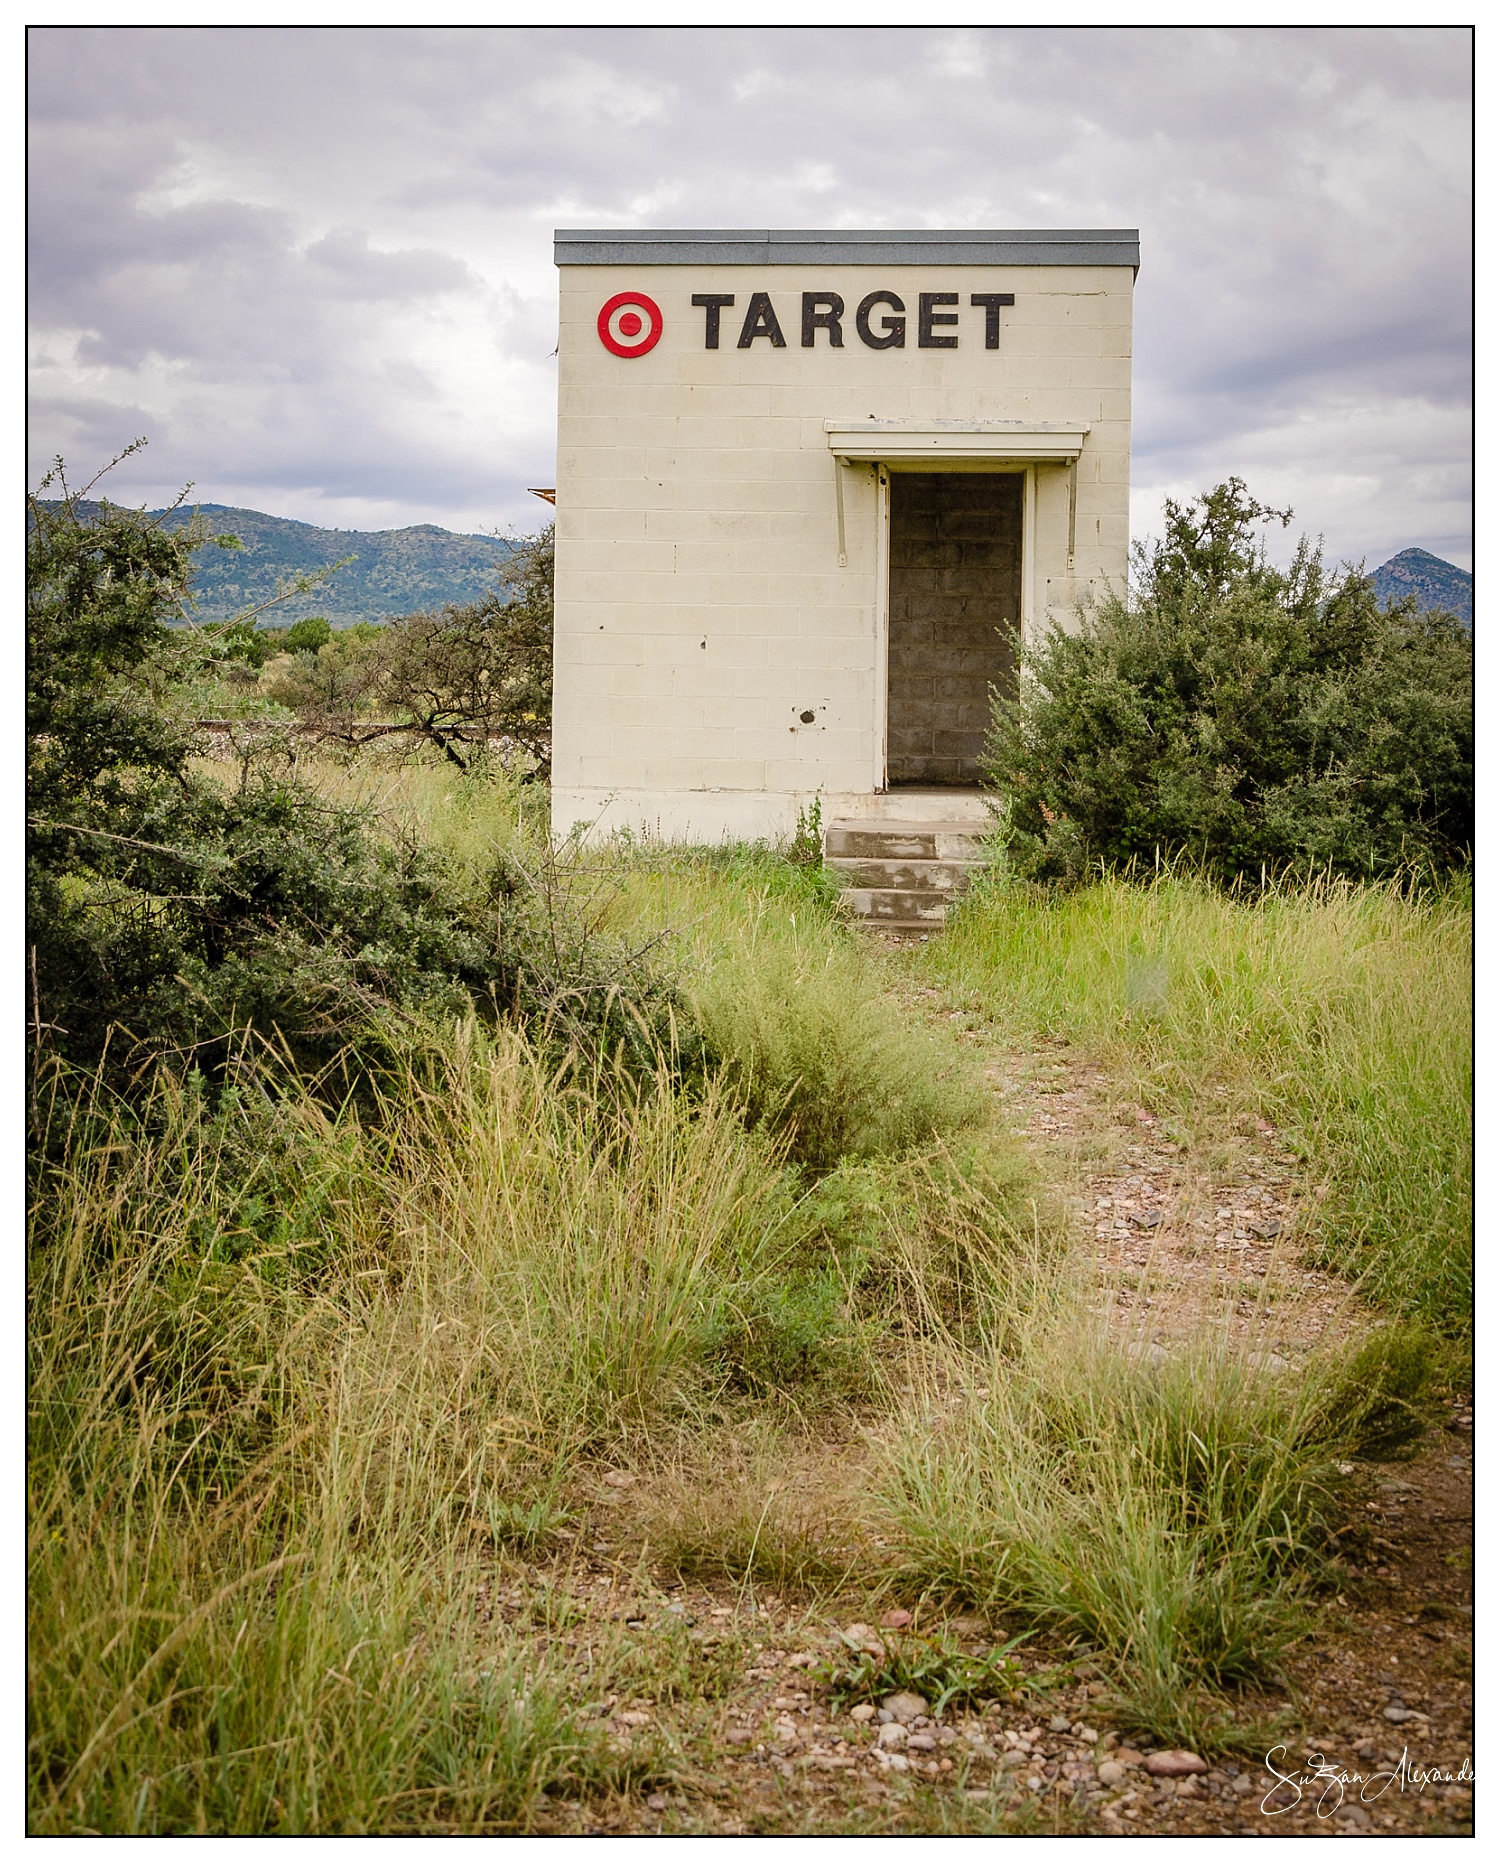 Texas Big Bend Area Target by the Railroad Tracks, Digital Photography, © 2016 SuZan Alexander